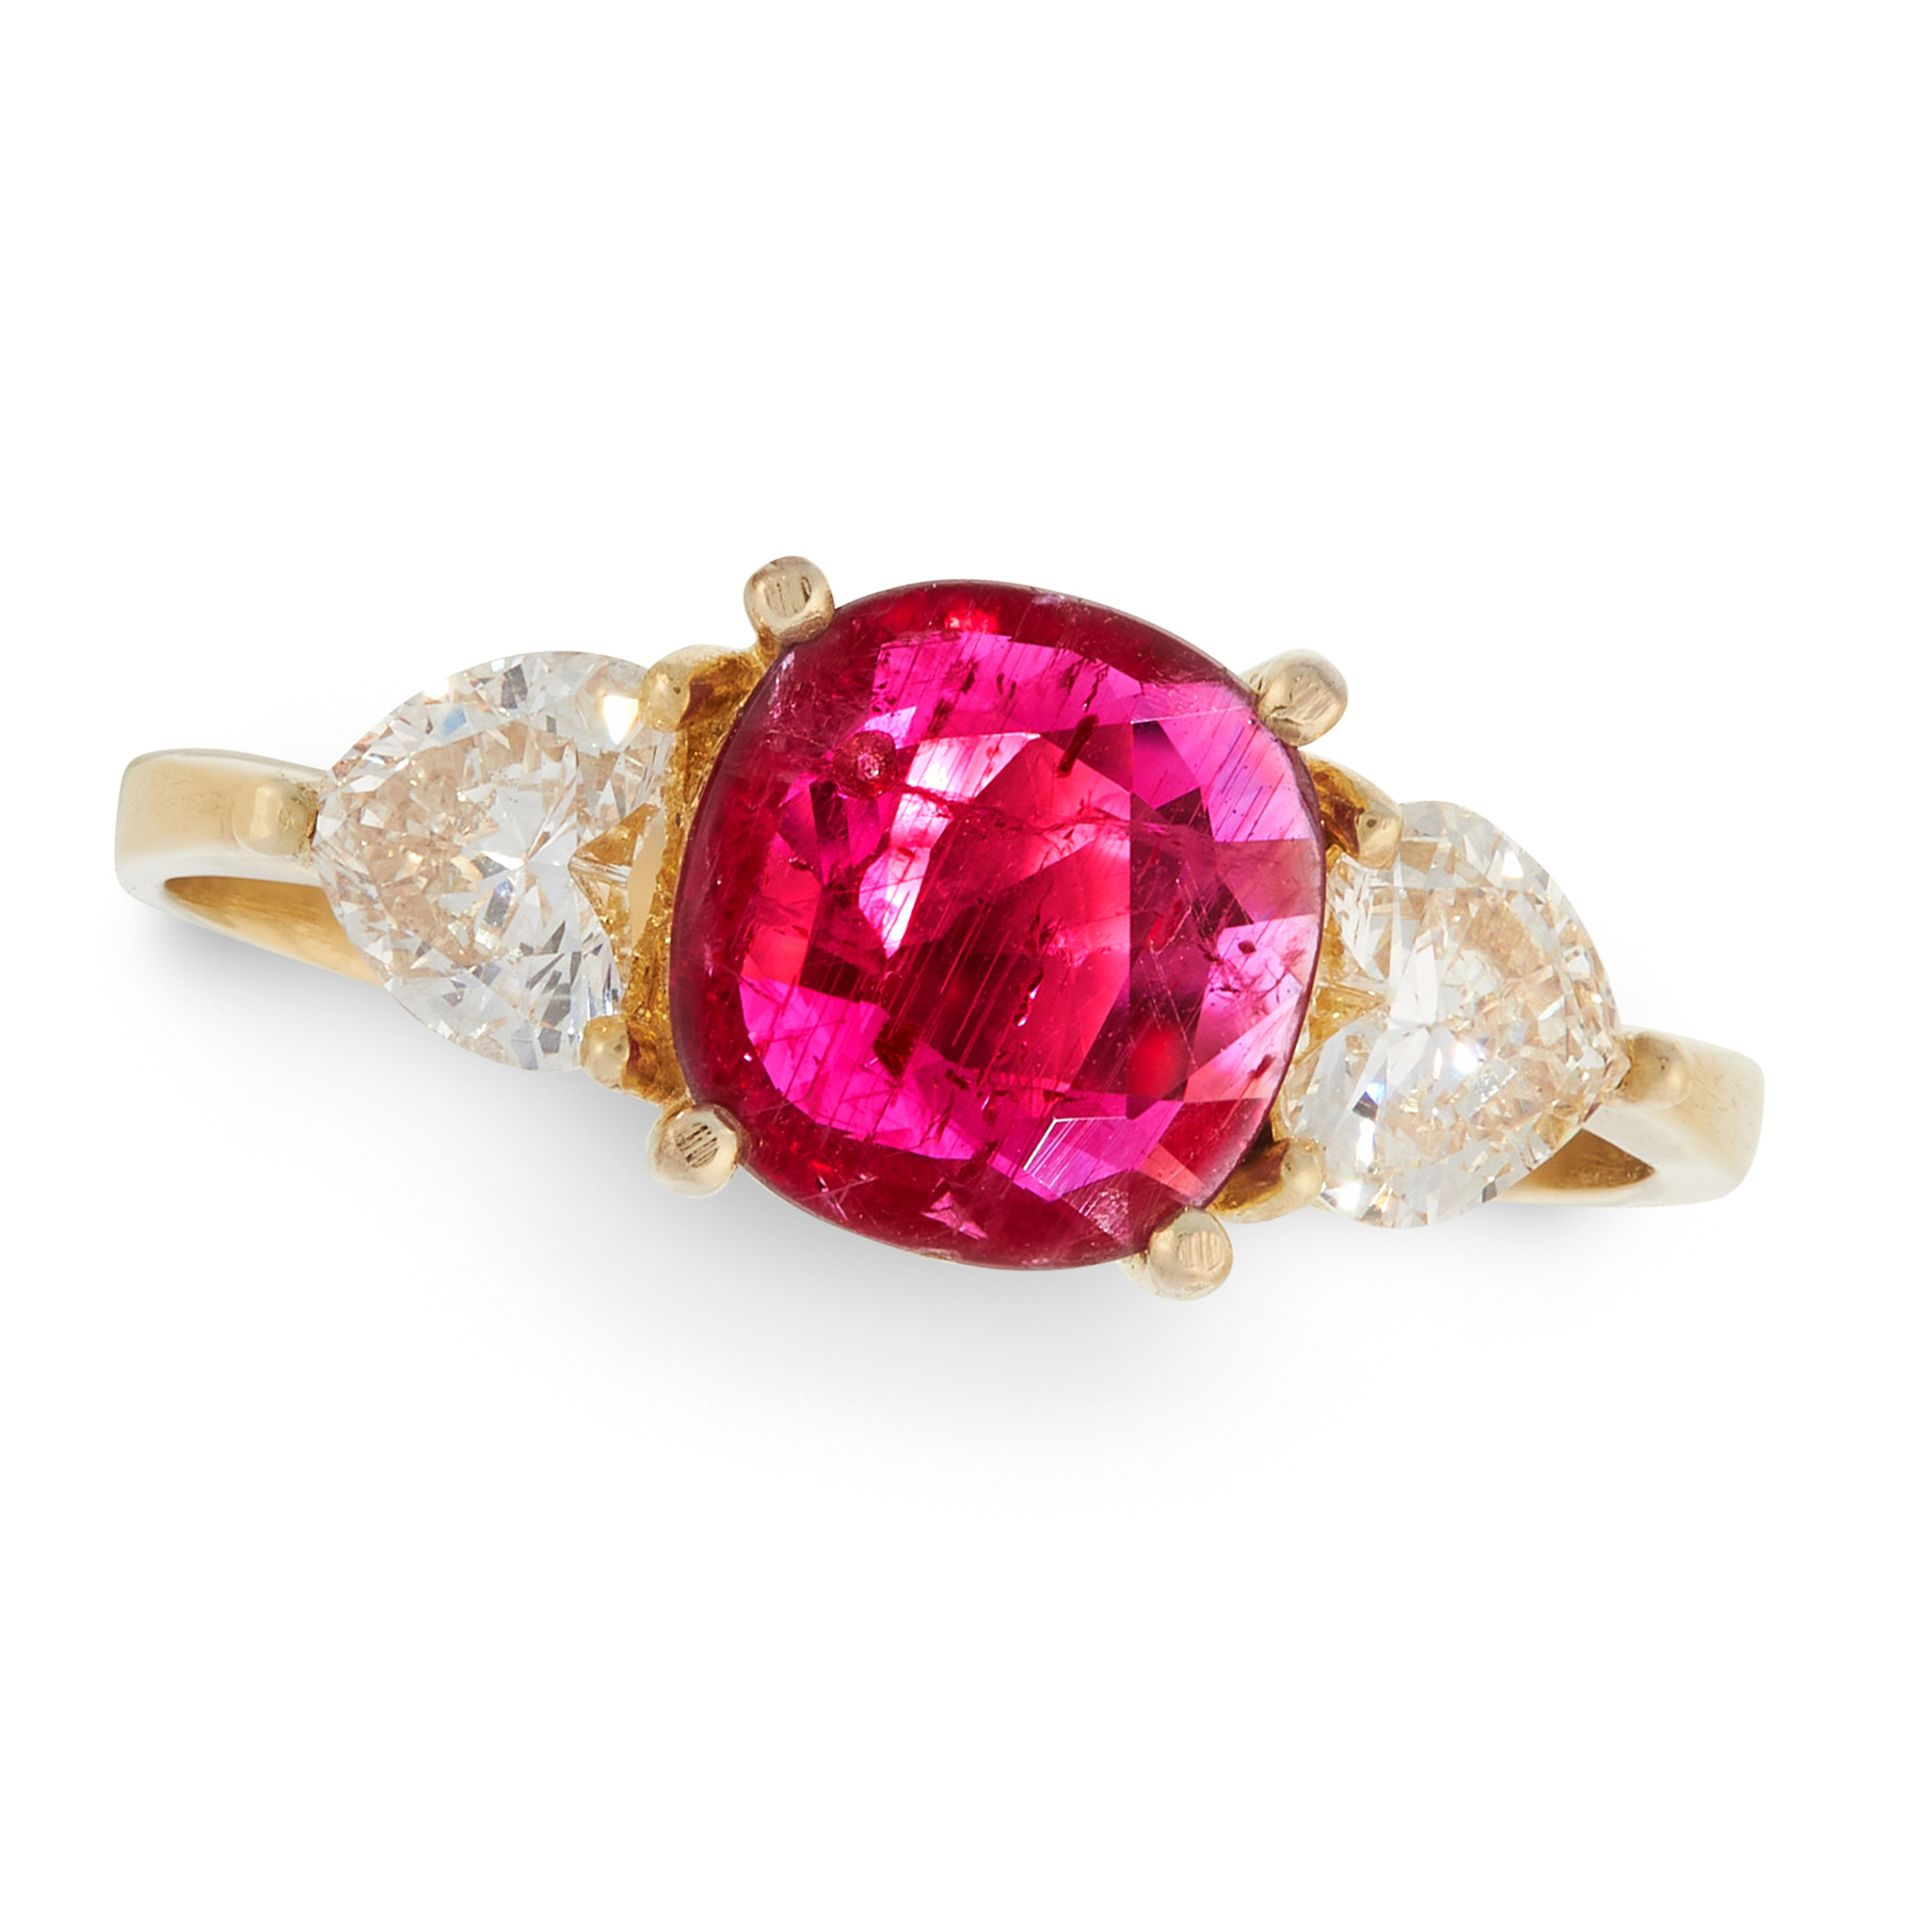 A RUBY AND DIAMOND RING in 18ct yellow gold, set with a cushion cut ruby of 1.30 carats between